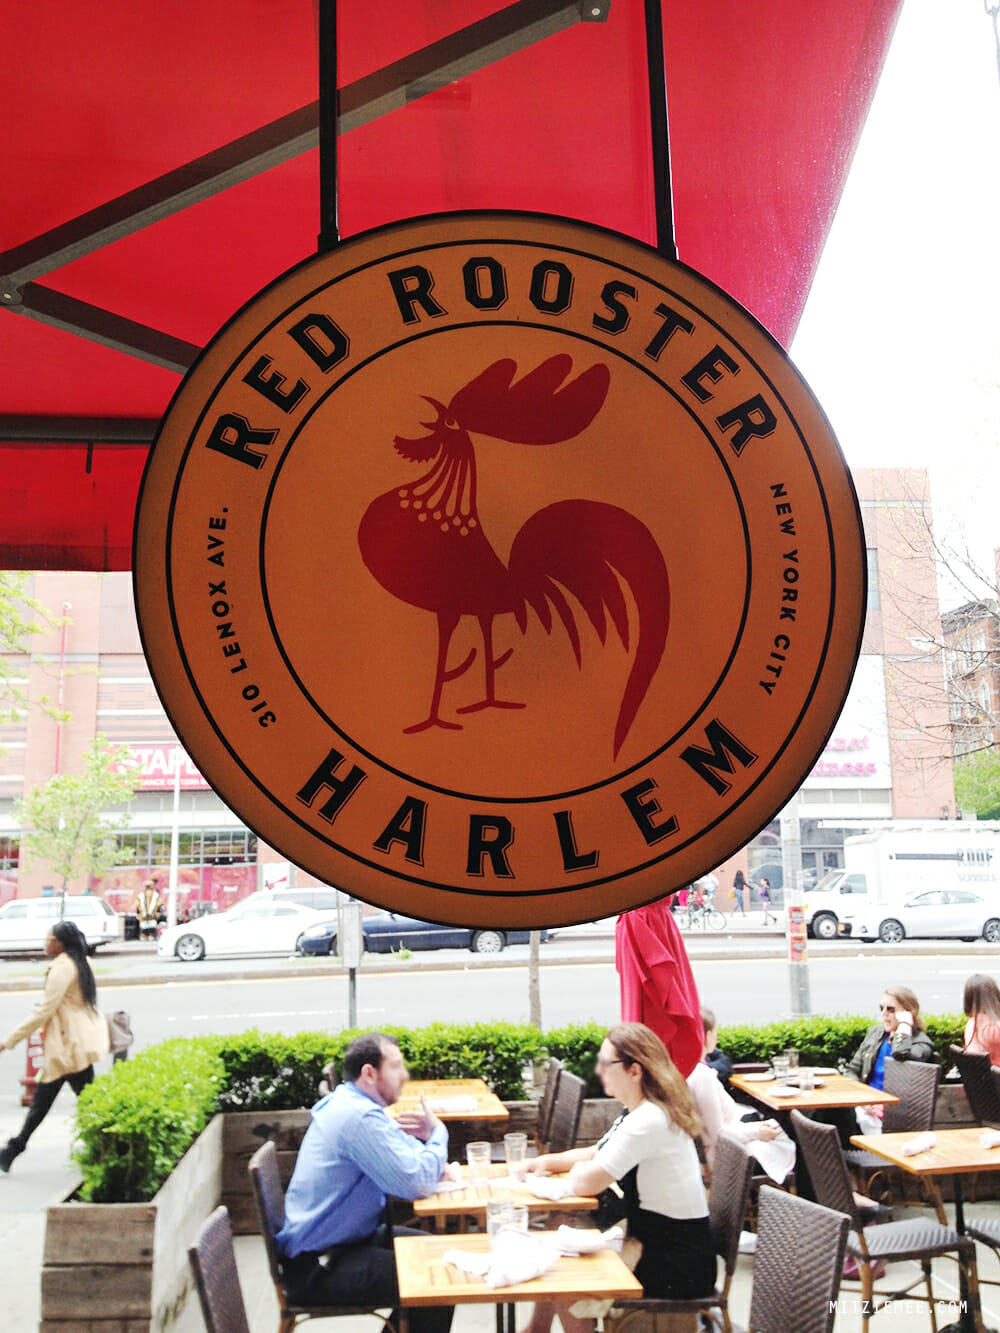 Red Rooster in Harlem, New York